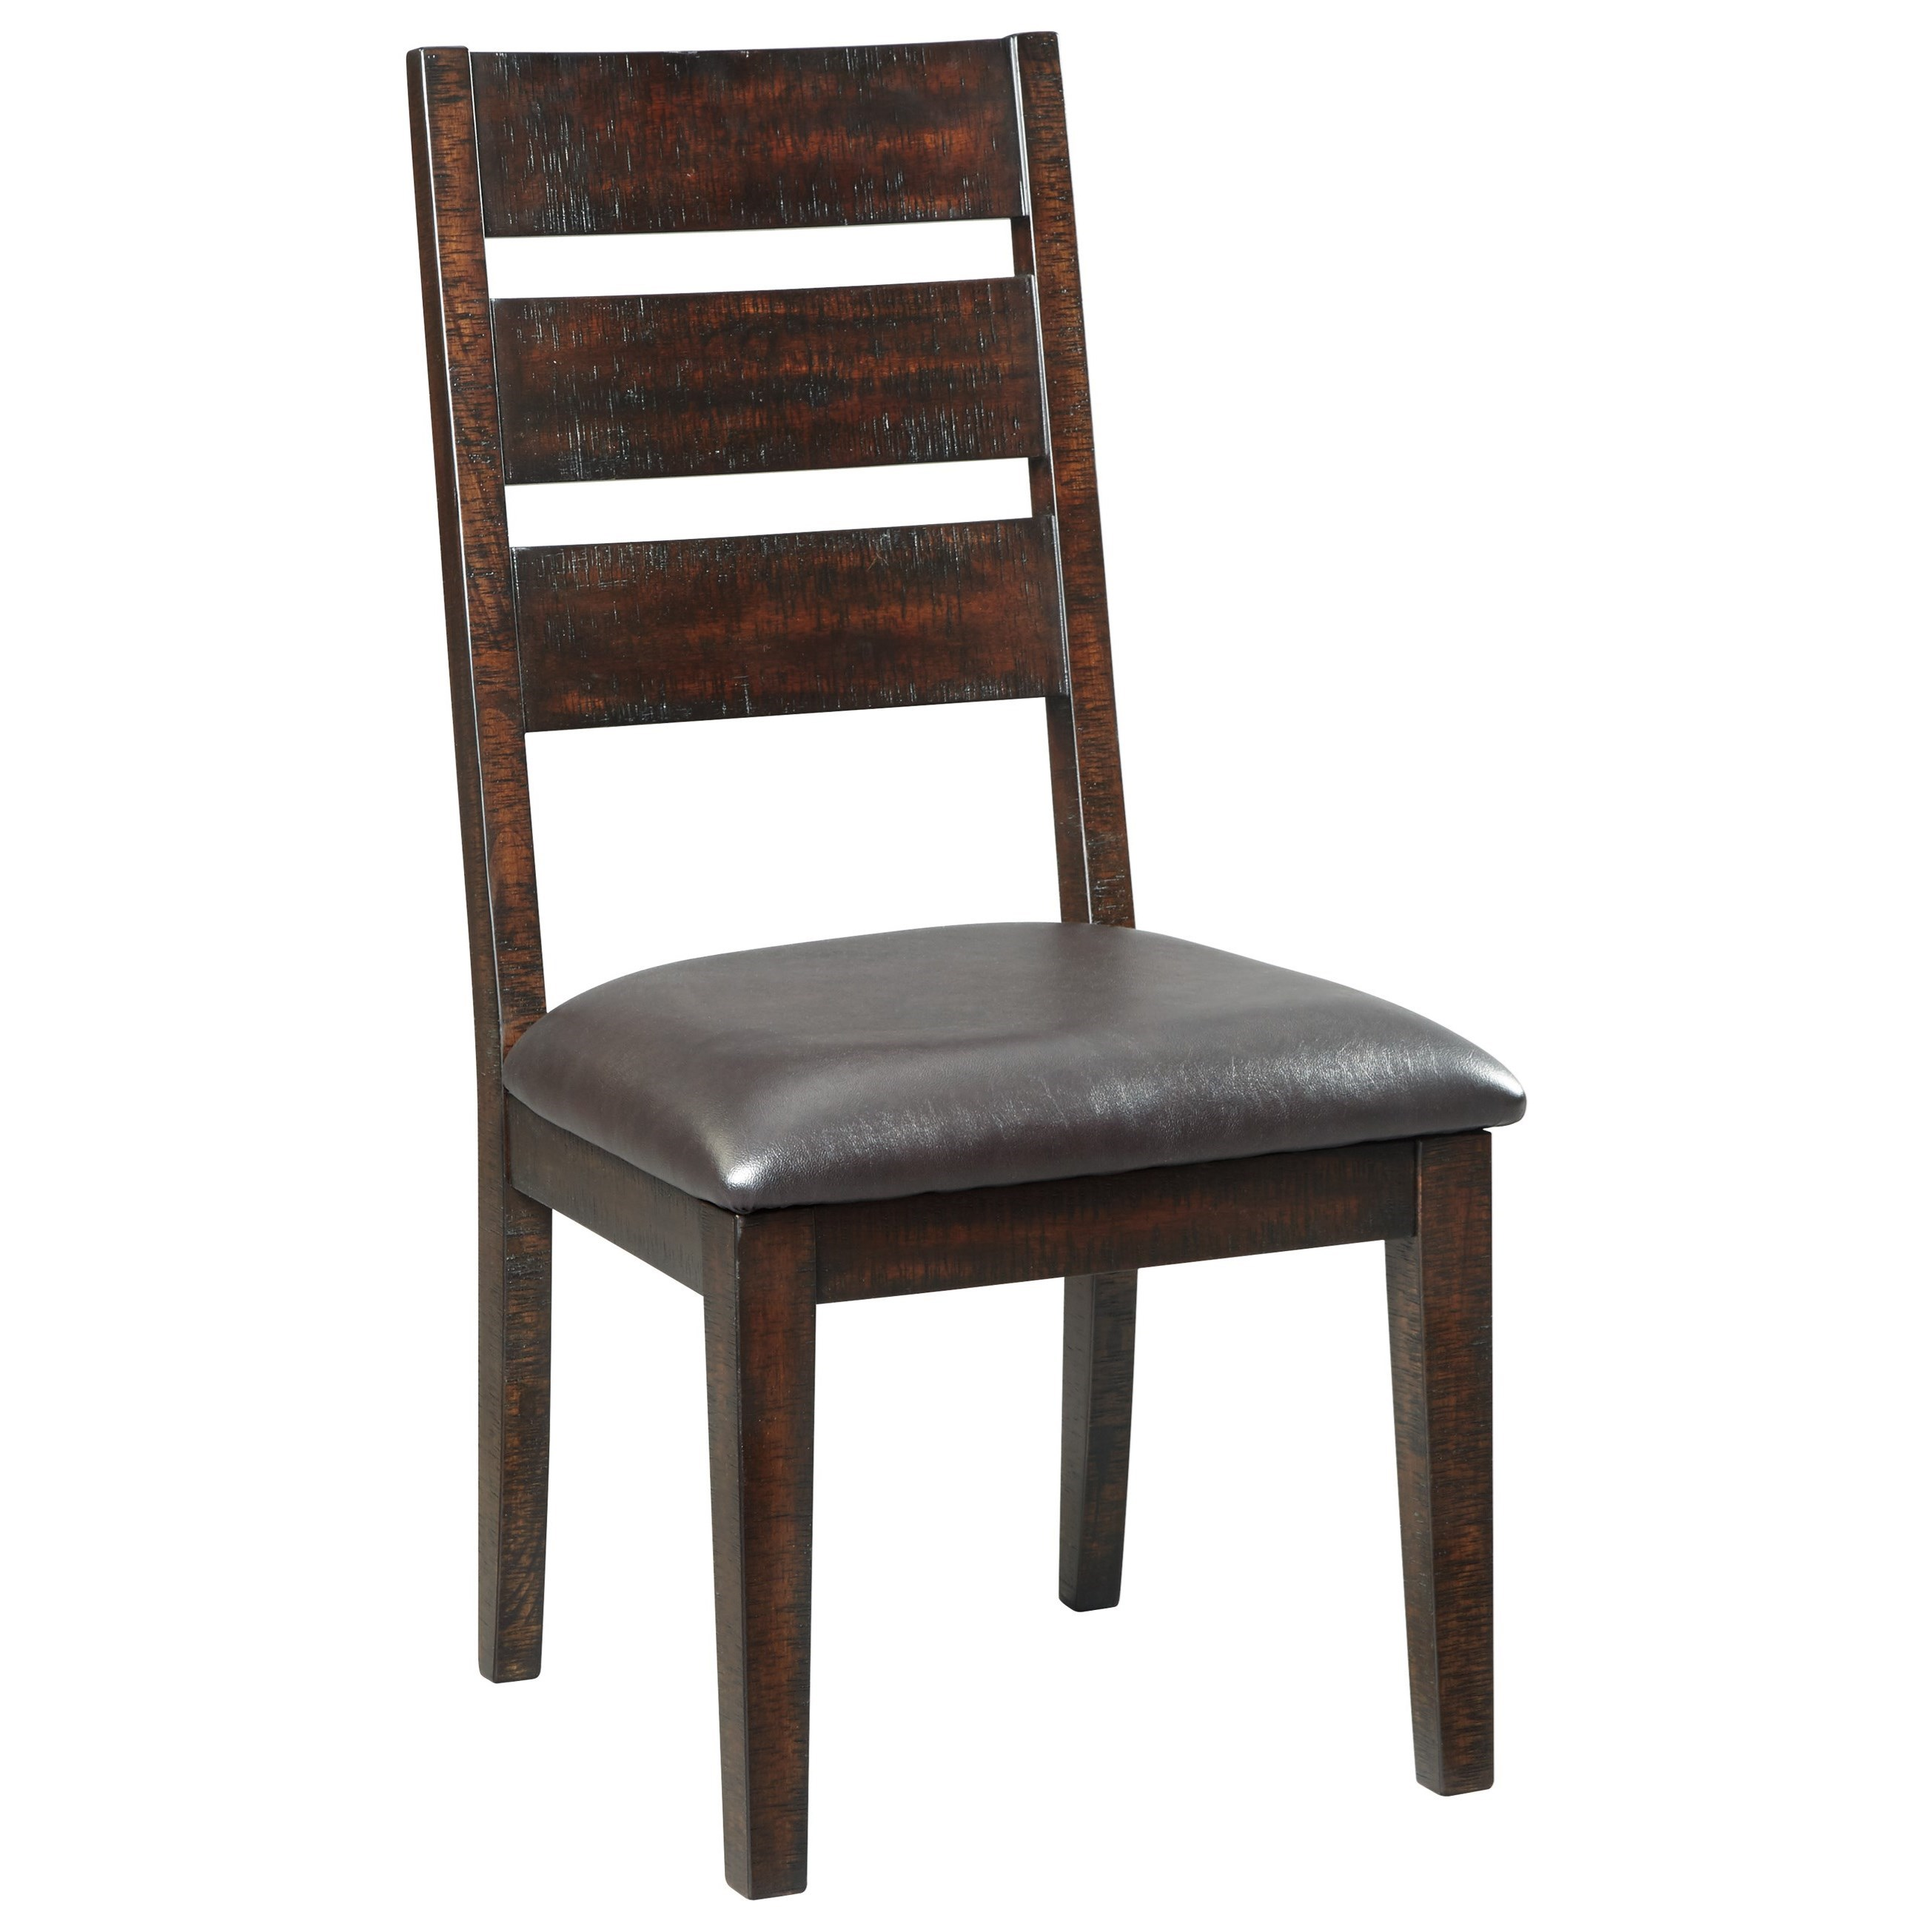 Signature Design by Ashley Parlone Dining Upholstered Side Chair - Item Number: D721-01